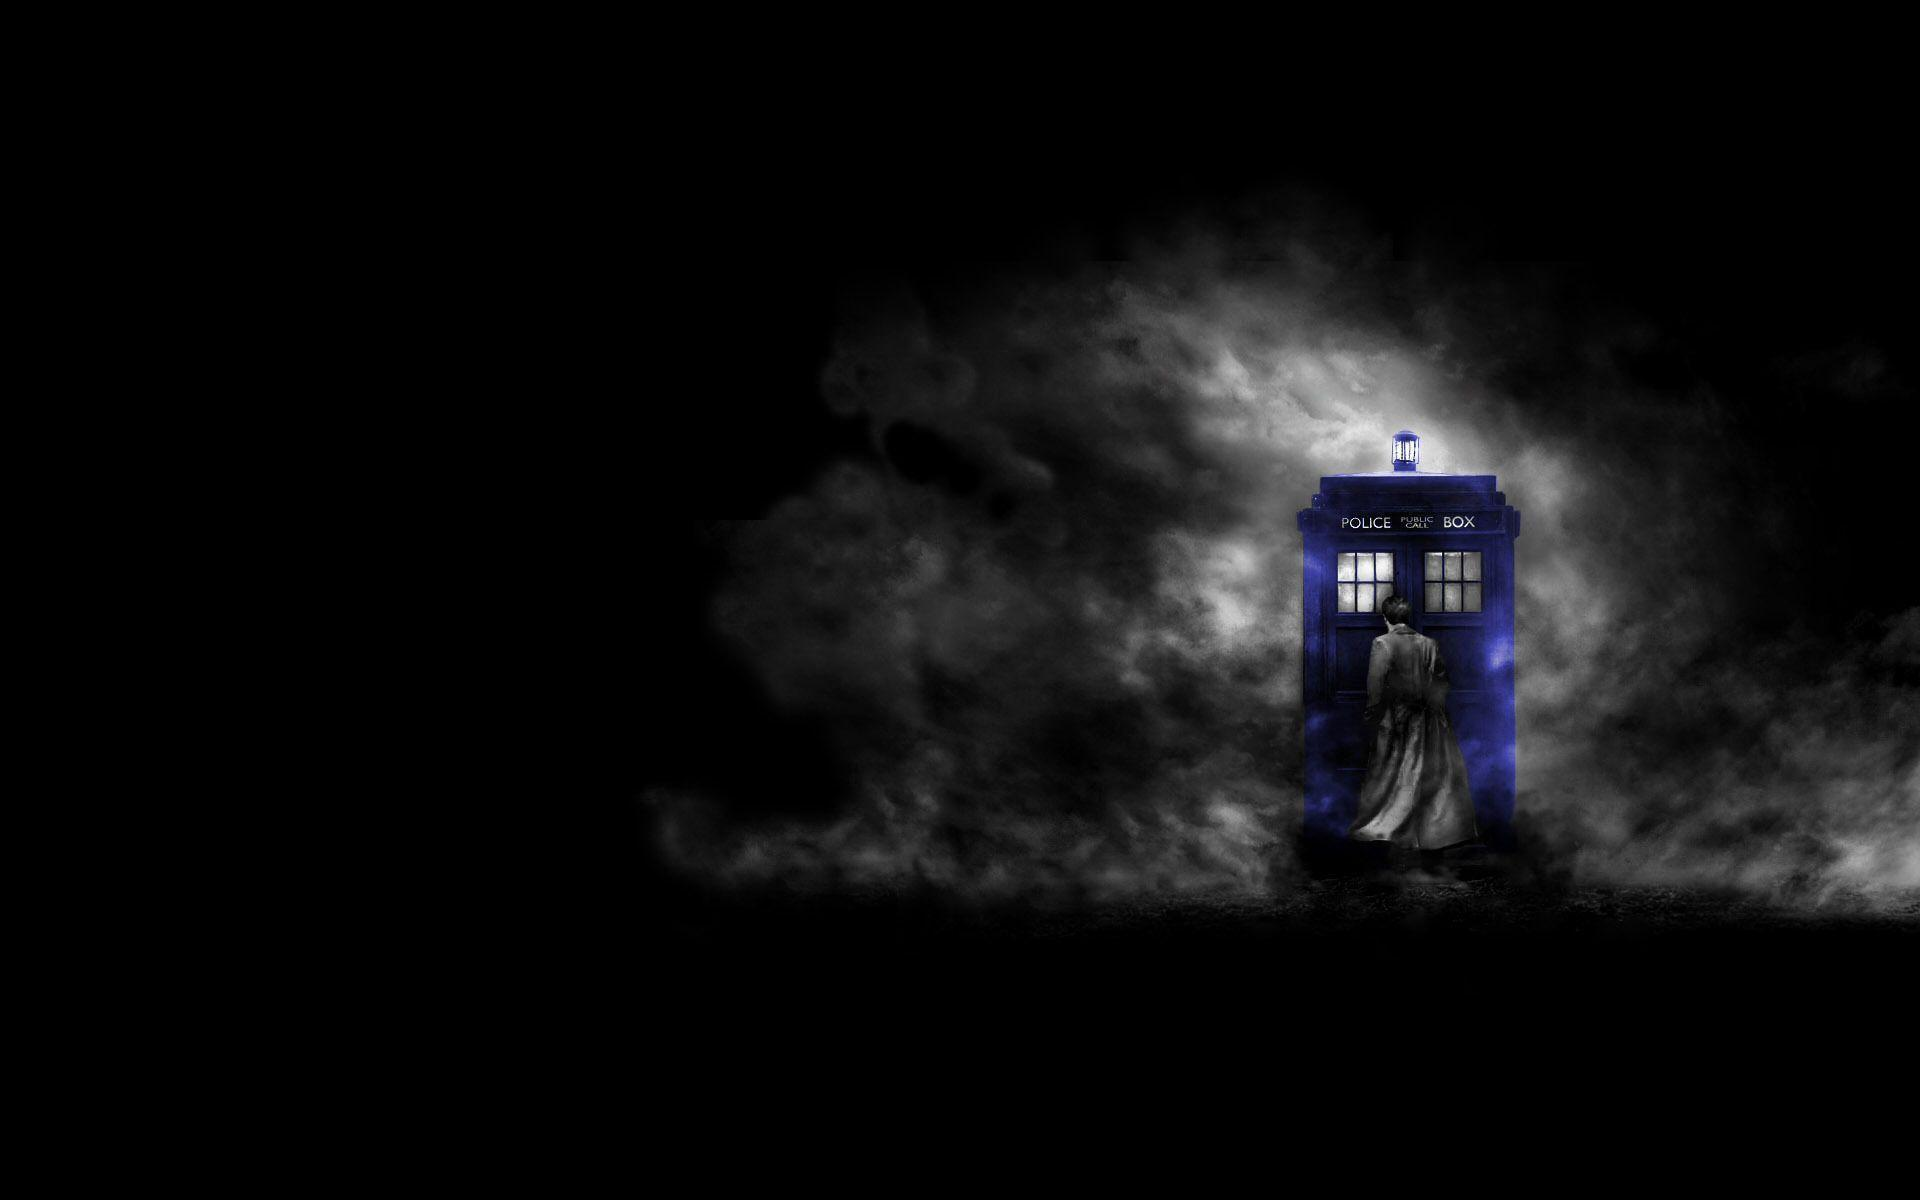 doctor who desktop wallpapers - wallpaper cave